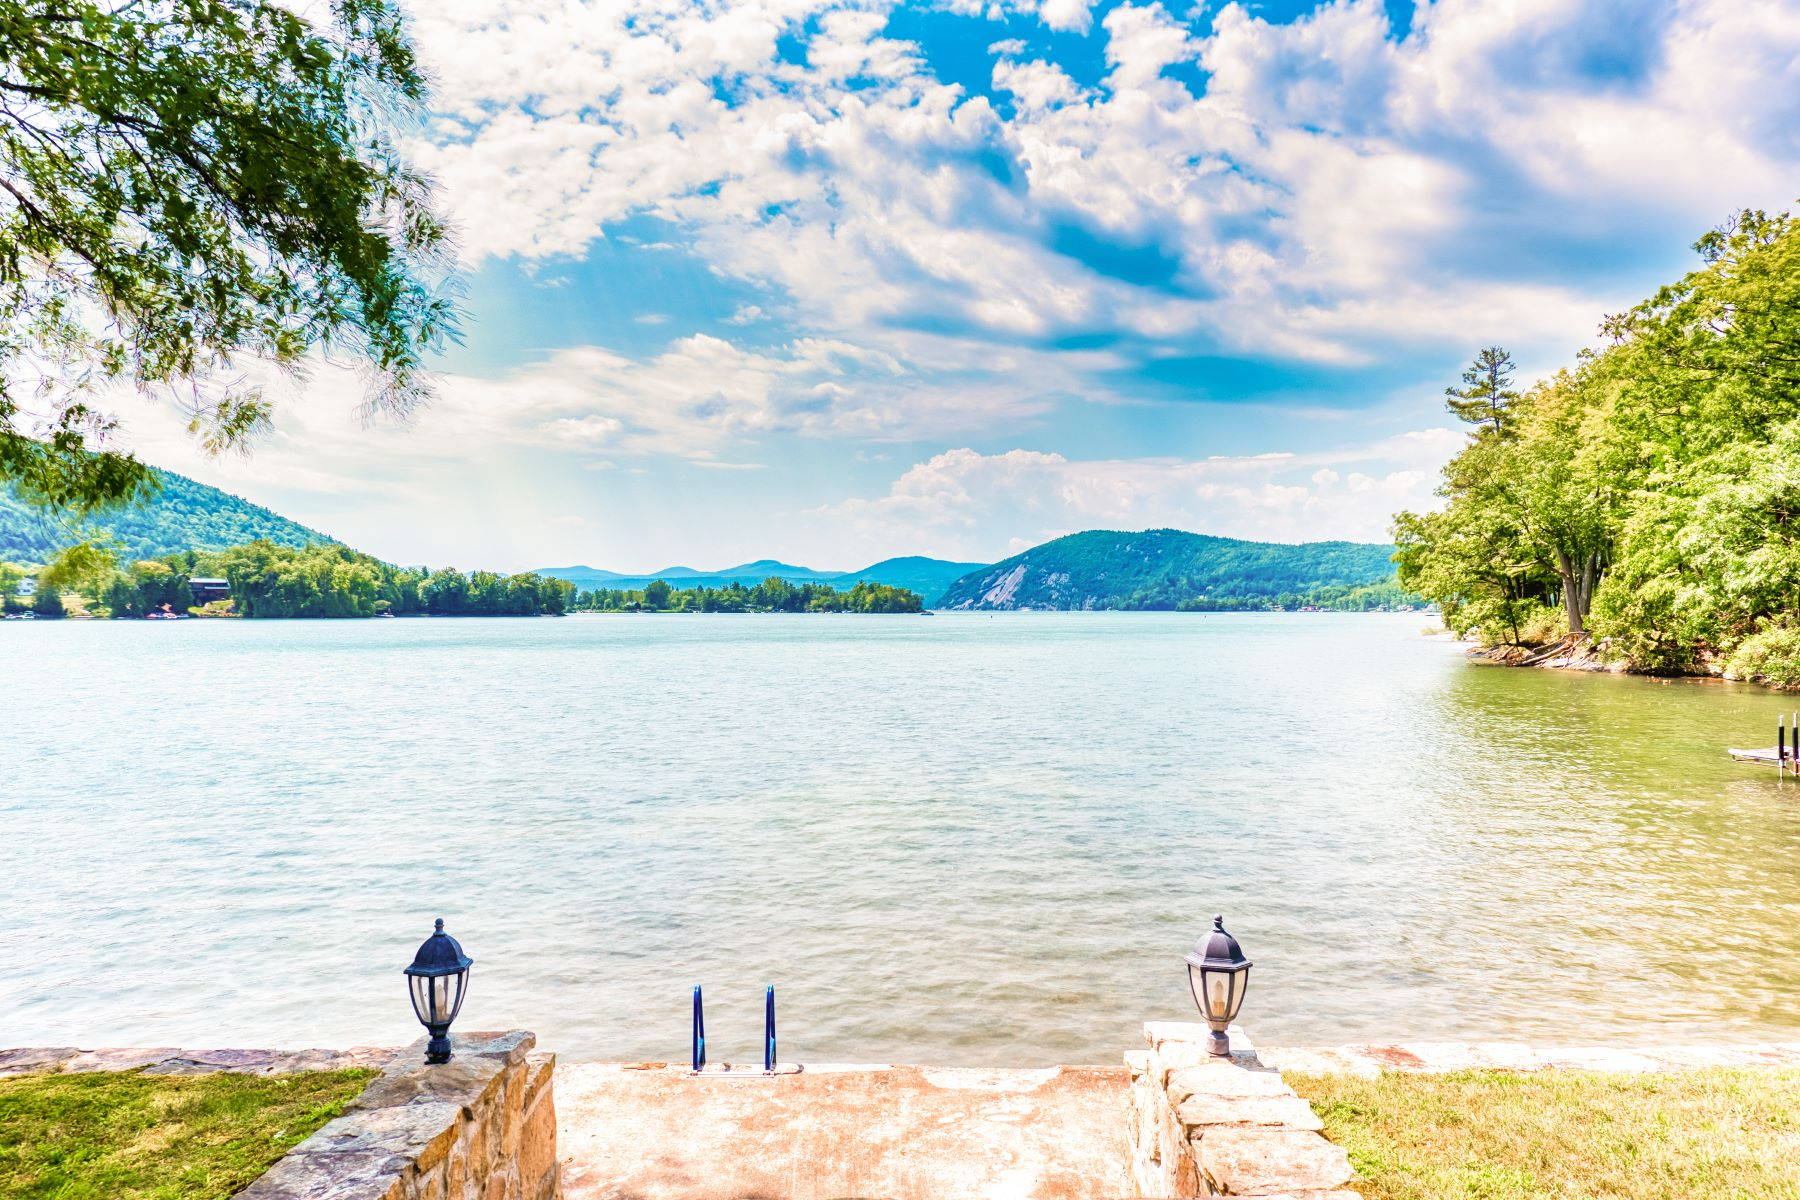 Single Family Homes for Sale at Beautifully Landscaped 1 Story On Lake George 306 Black Point Rd Ticonderoga, New York 12883 United States